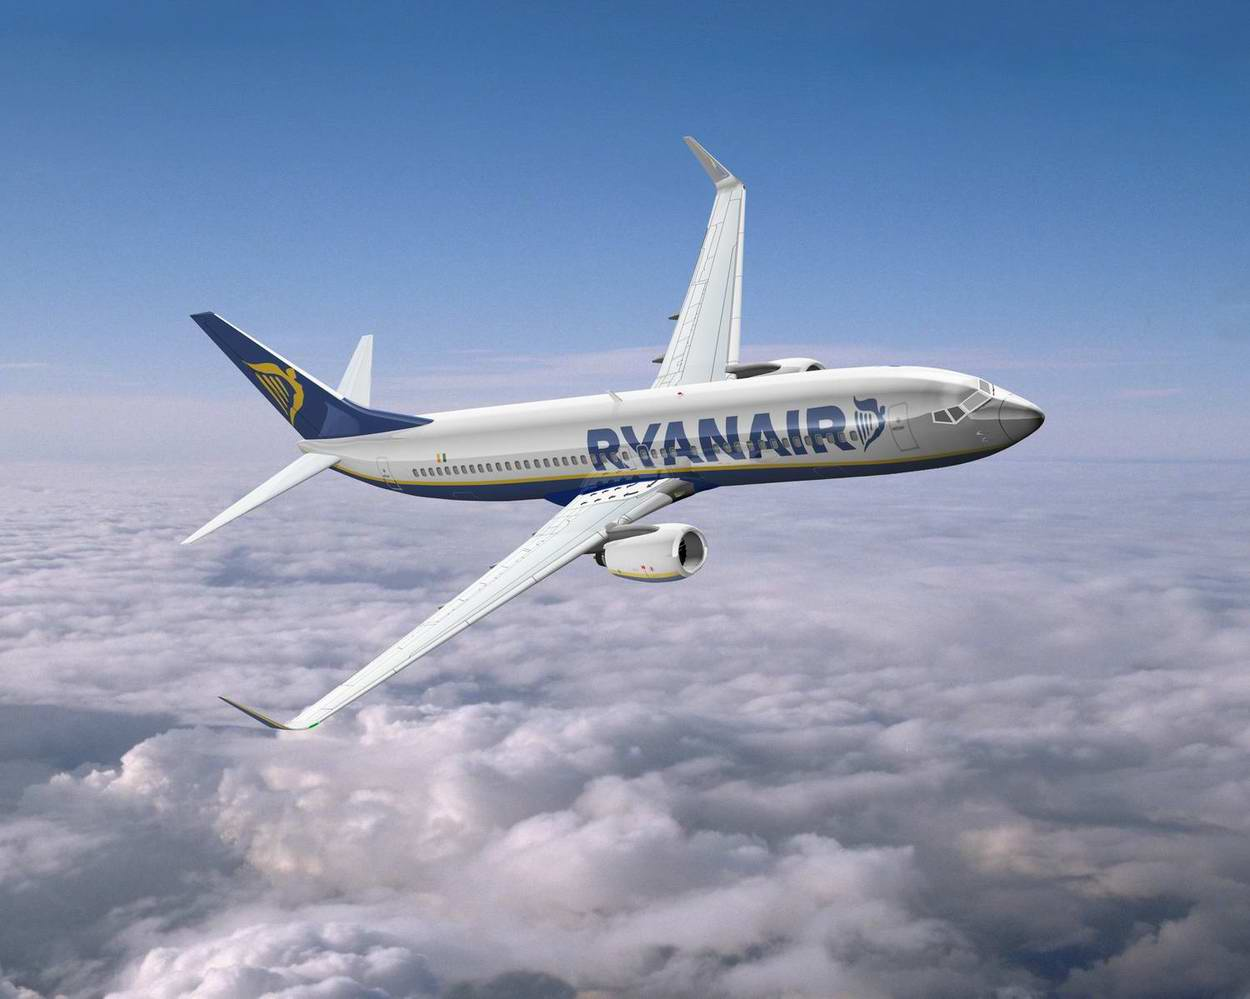 Ryanair: the world's most expensive airline?